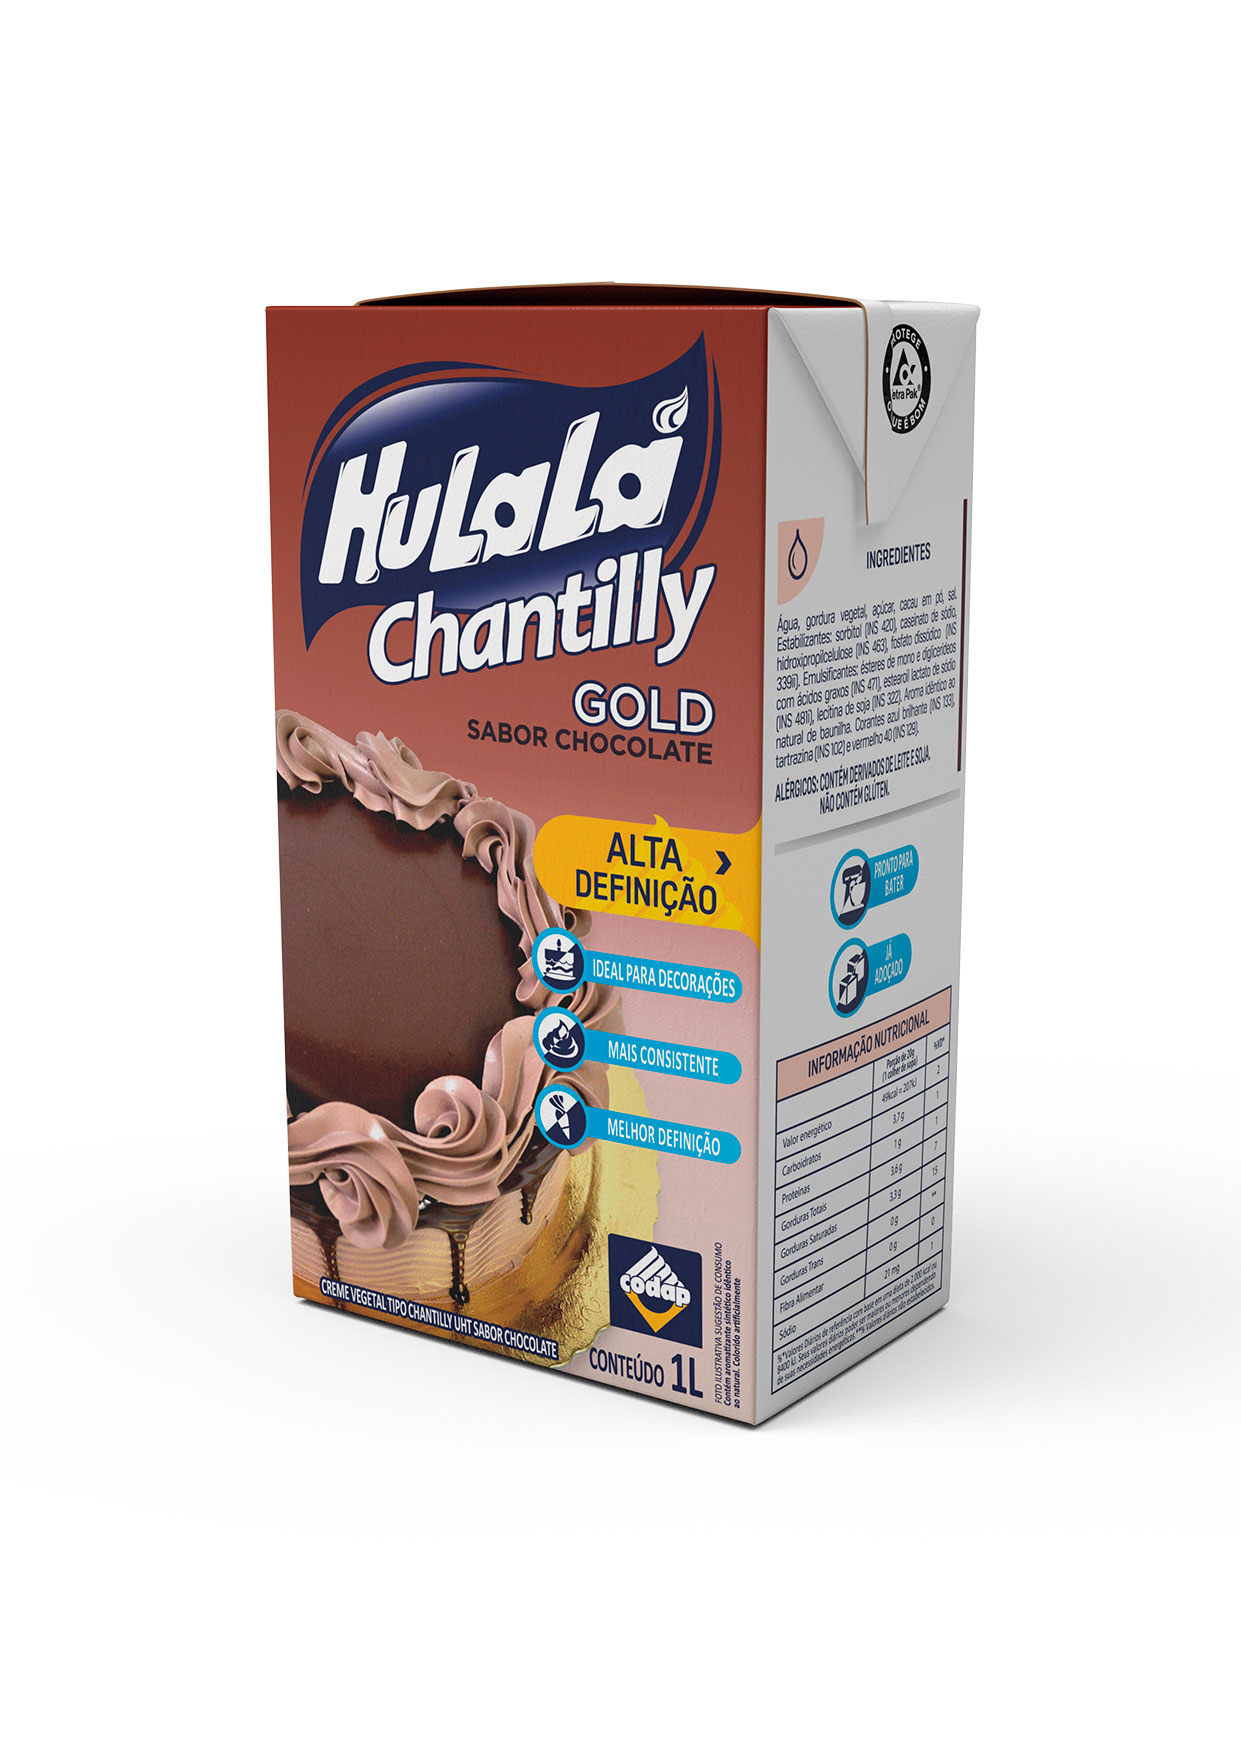 CHANTILLY GOLD HULALÁ CHOCOLATE